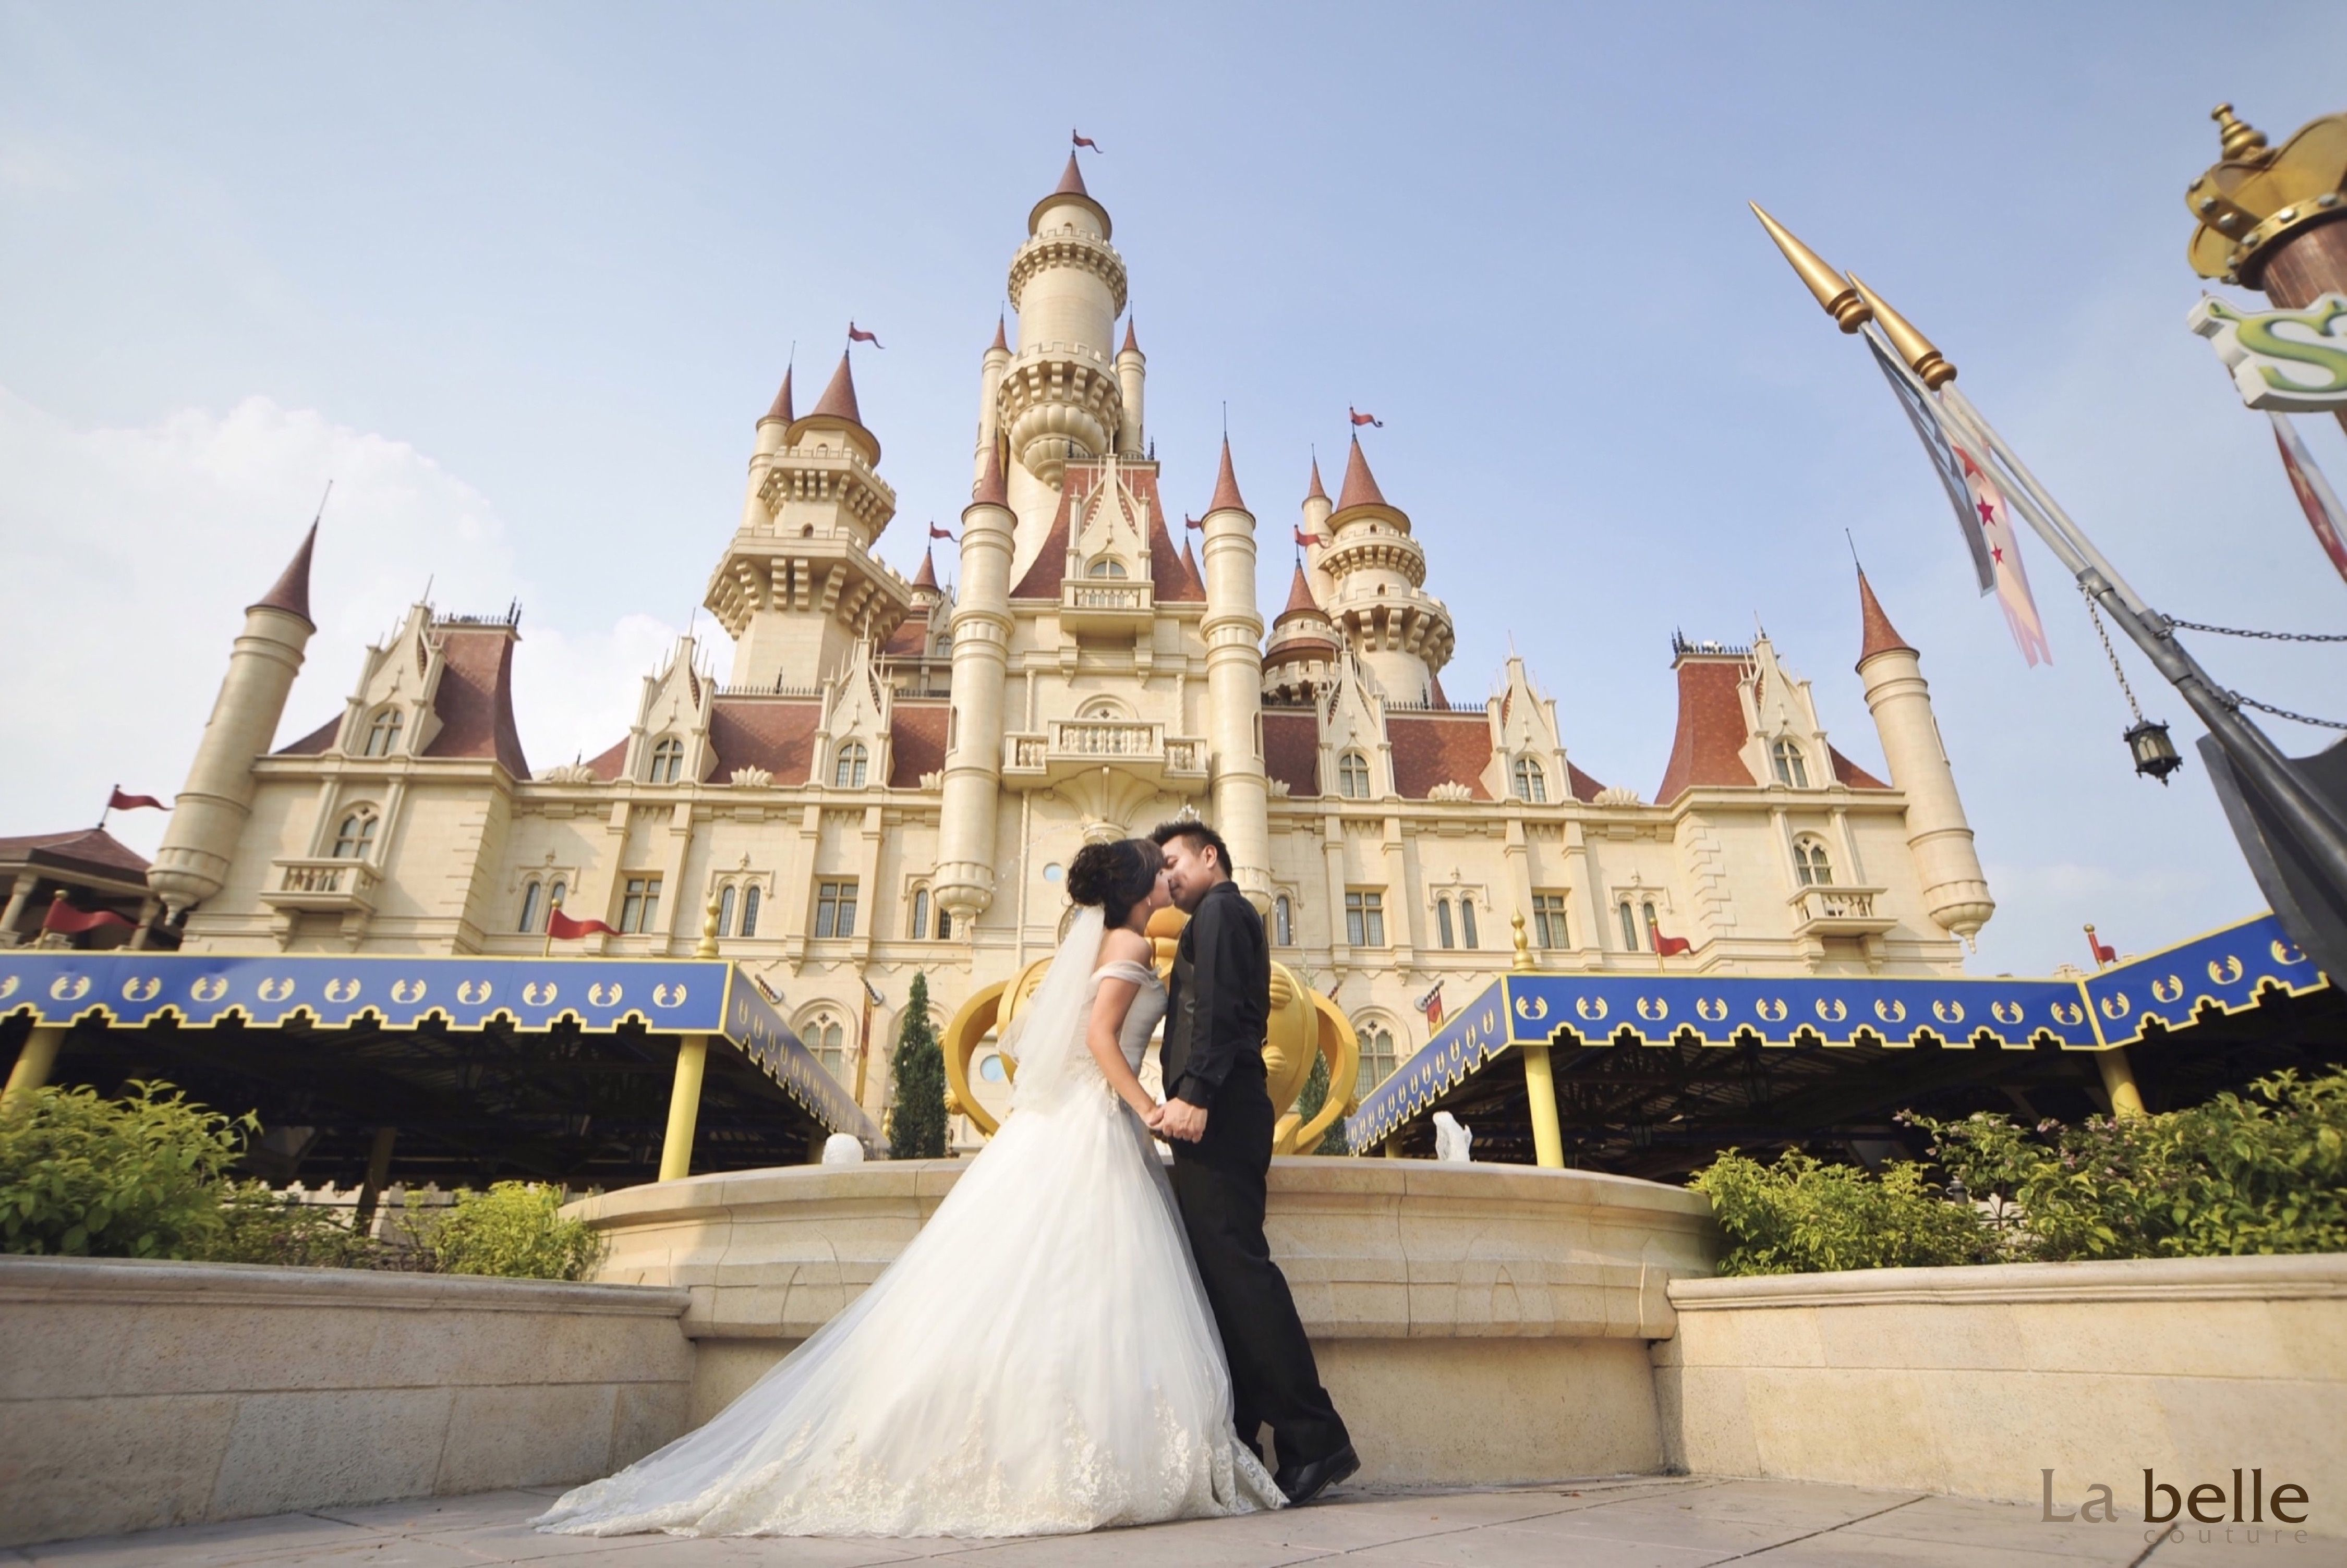 Whoever Said Singapore Does Not Have A Beautiful Castle For Fairytale Wedding Photoshoot It Universal Studios